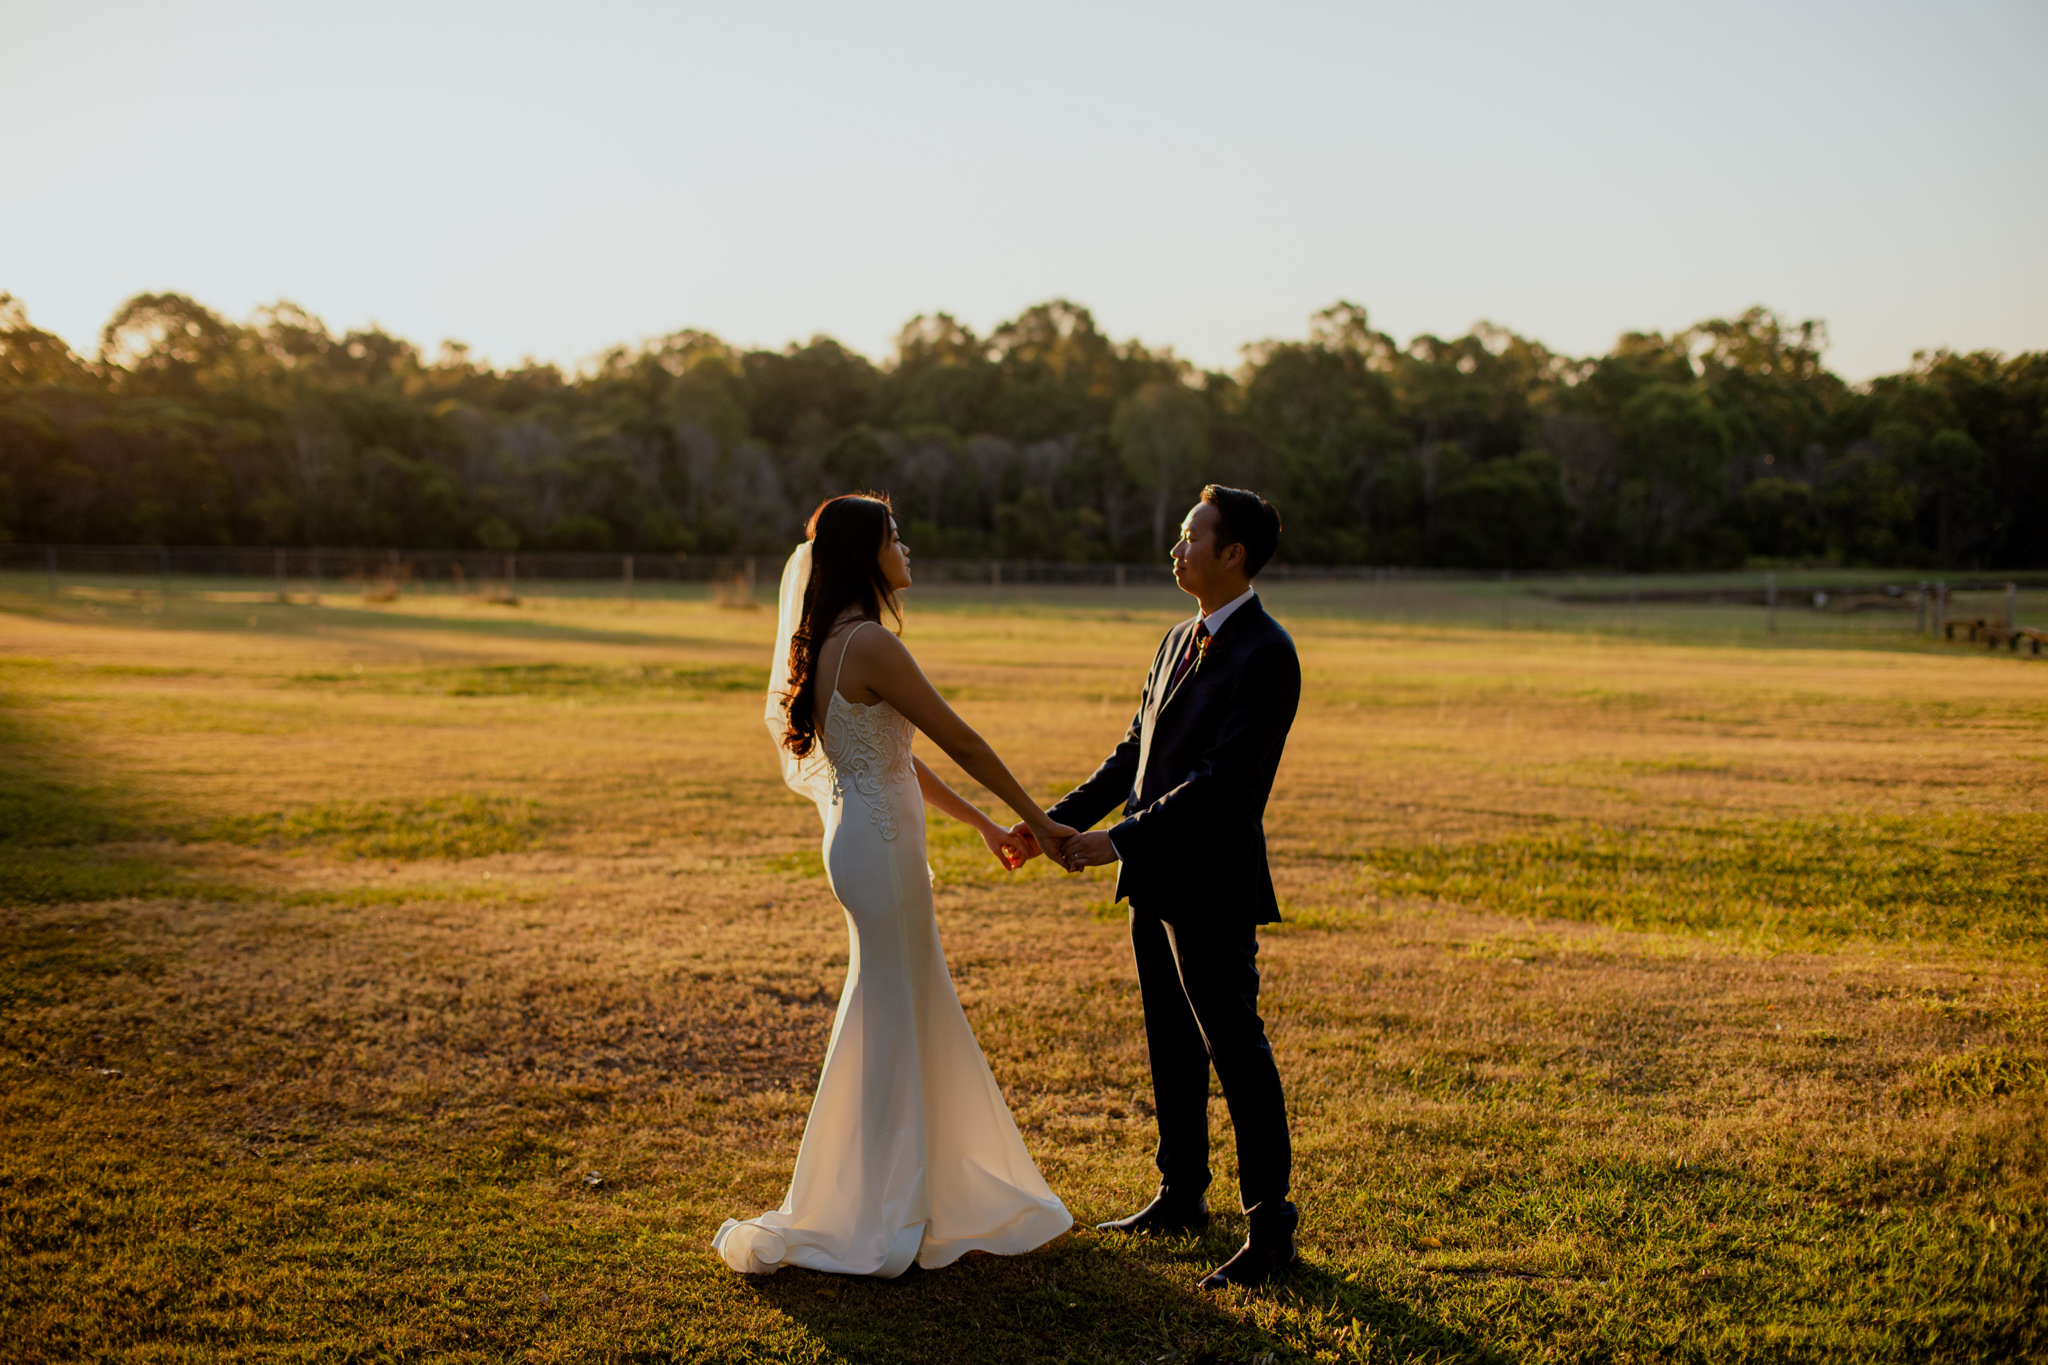 Two newlyweds hold hands in a large open field with golden light shining everywhere